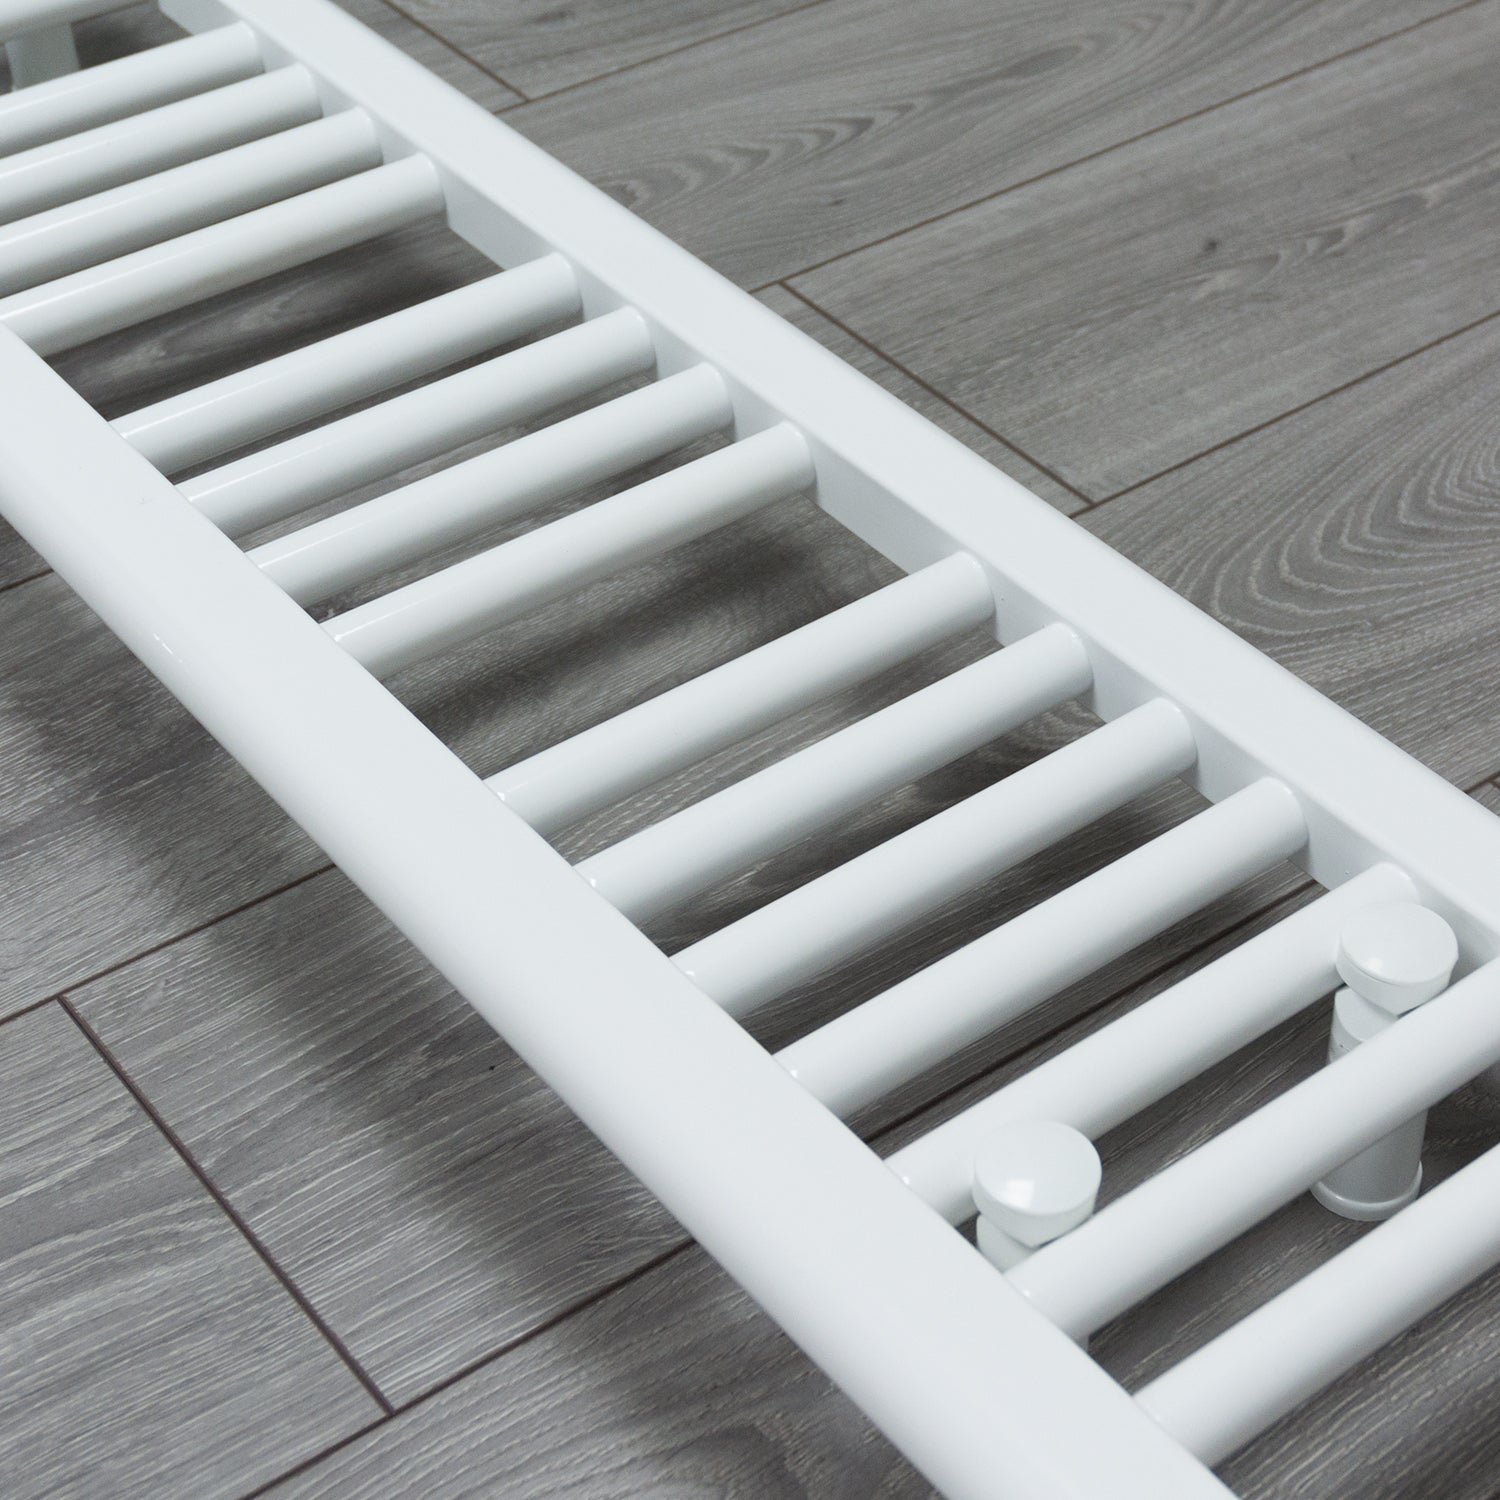 200mm Wide 600mm High Flat White Heated Towel Rail Radiator HTR